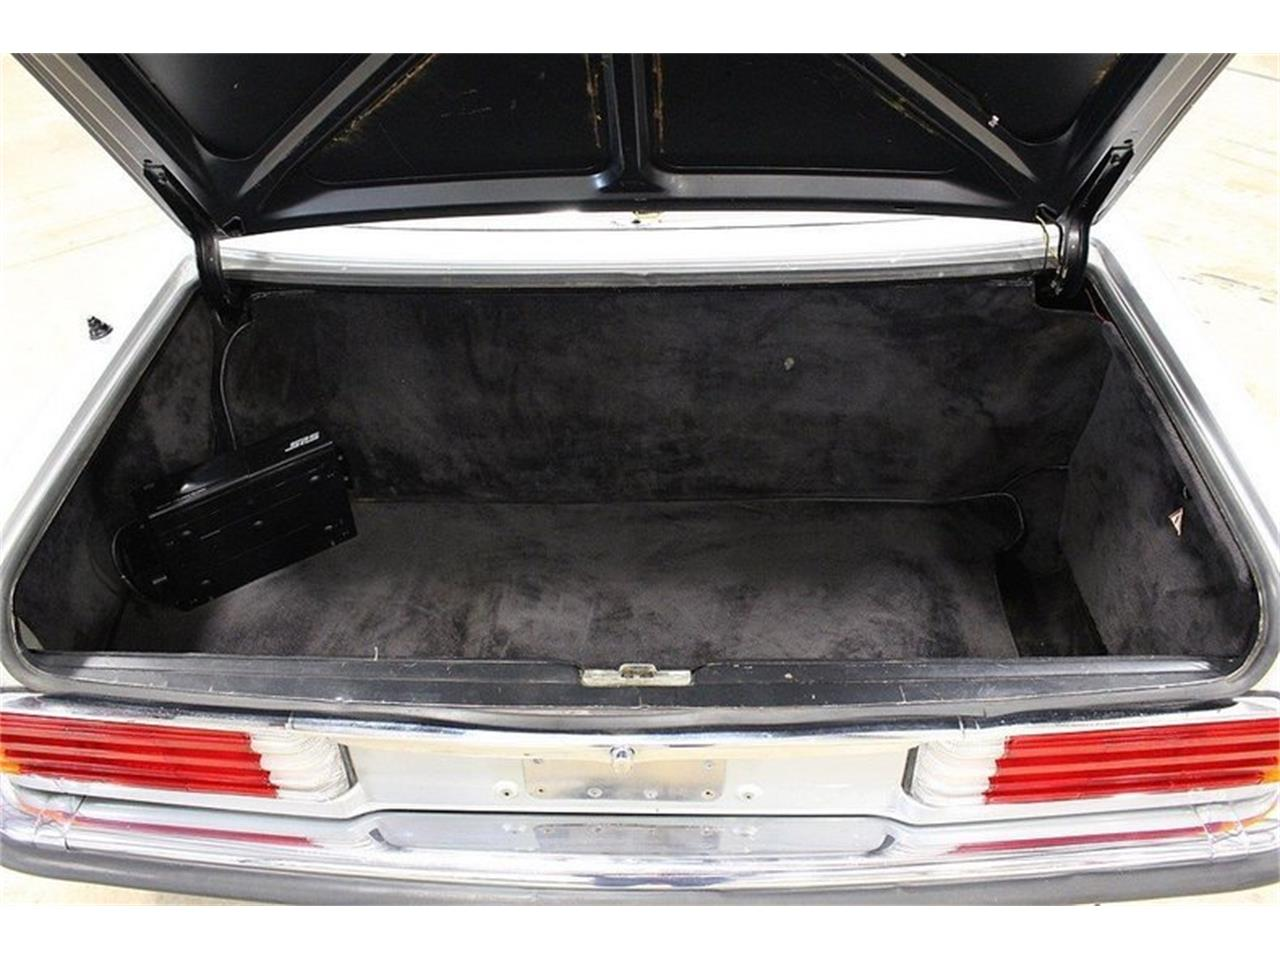 Large Picture of 1980 Mercedes-Benz 450SL located in Kentwood Michigan - $14,900.00 - M6AJ